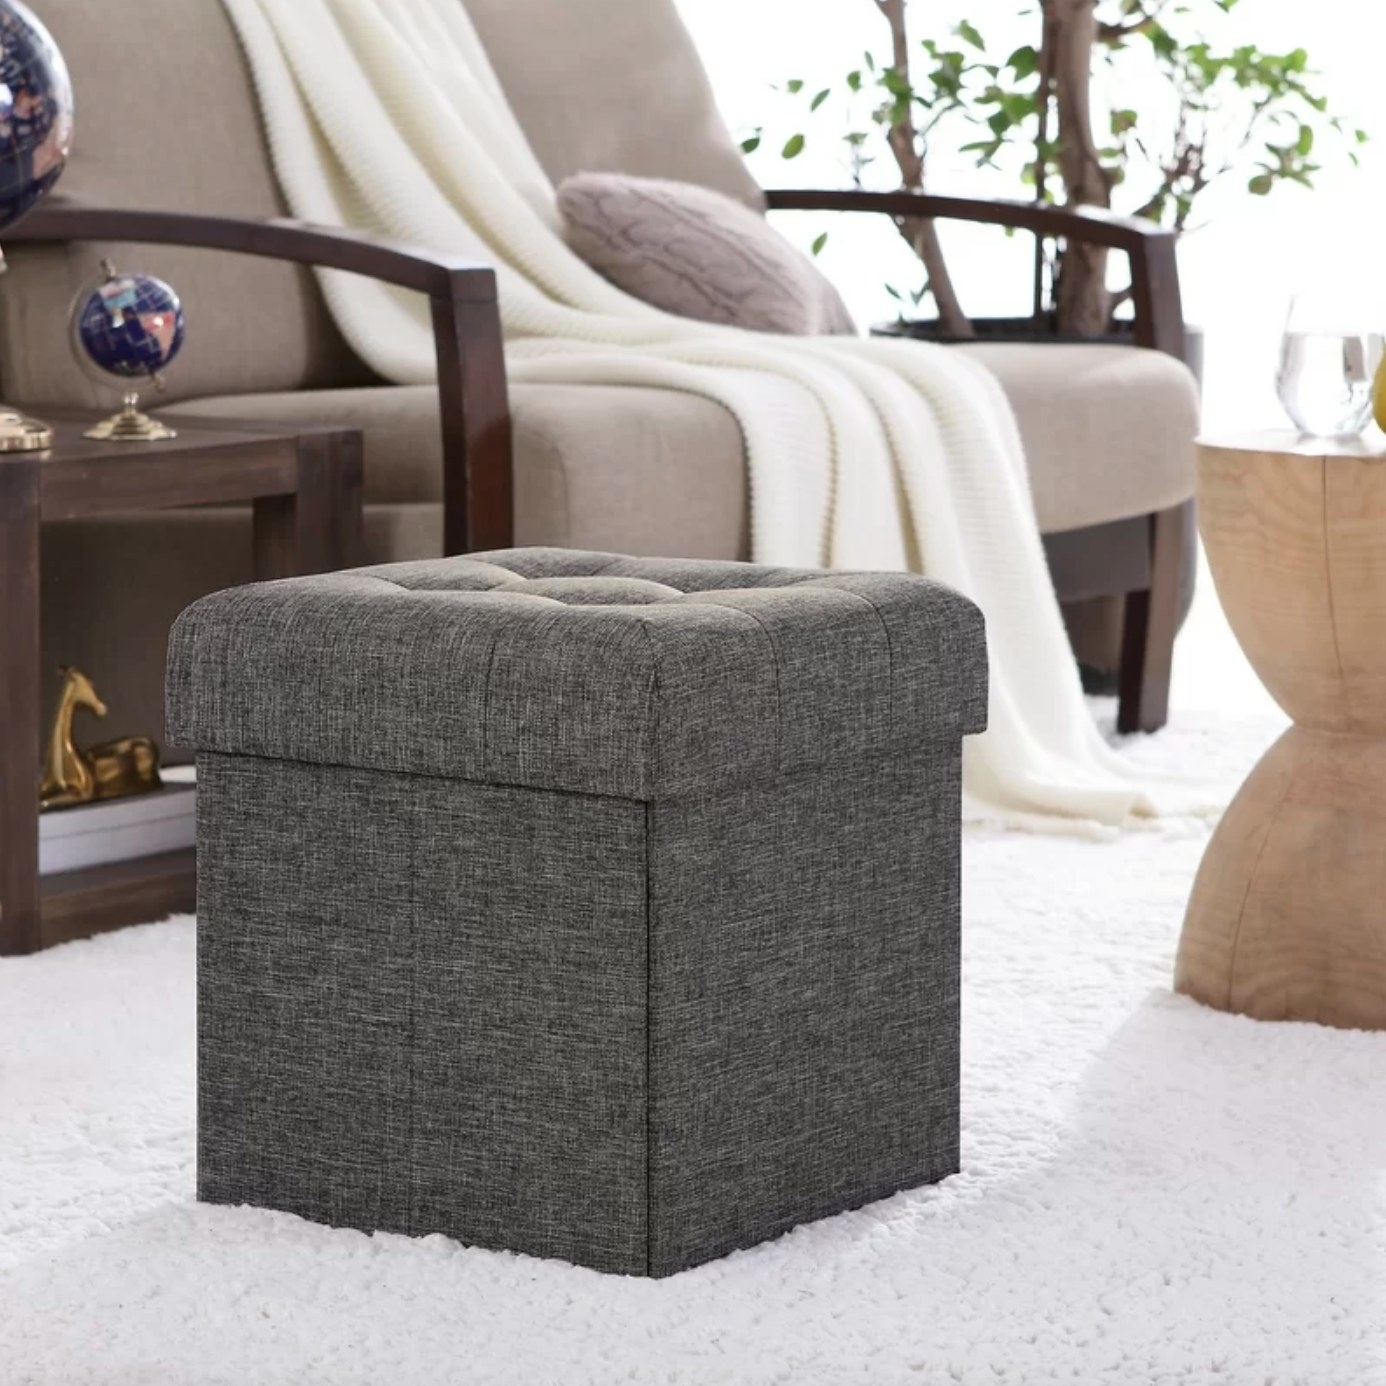 The tufted cube square in charcoal